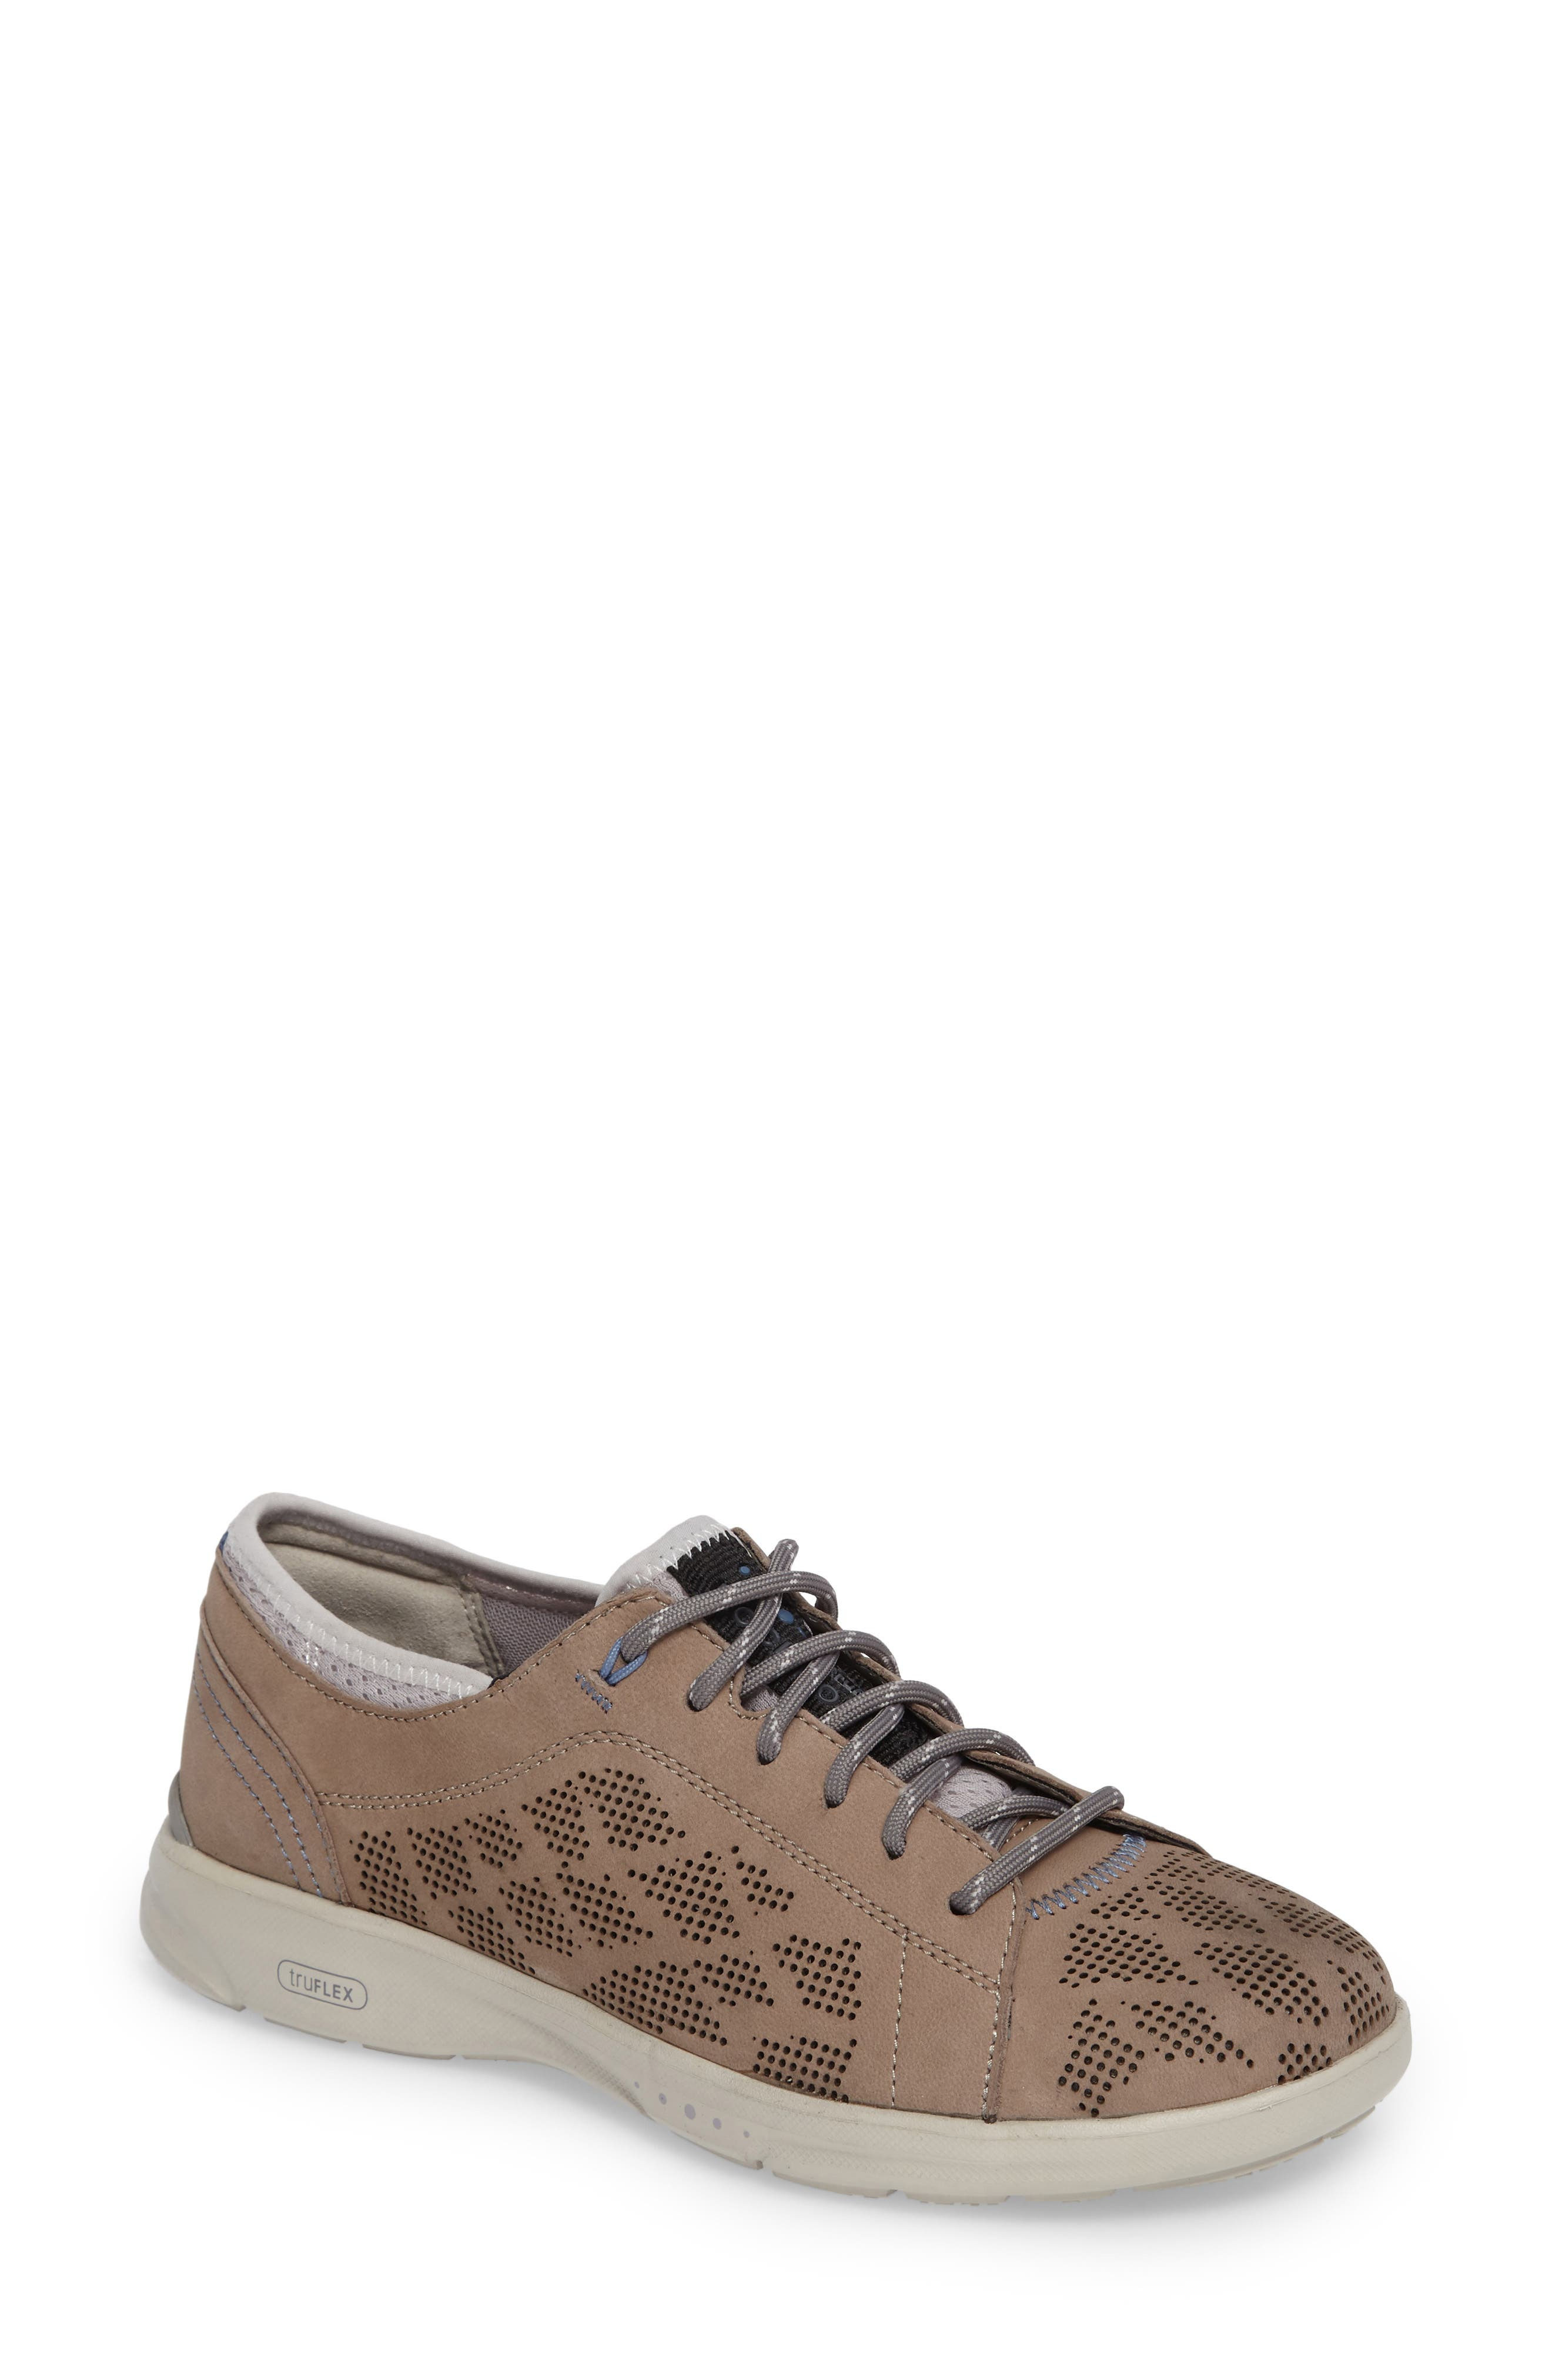 truFLEX Perforated Sneaker,                             Main thumbnail 1, color,                             Sand Leather